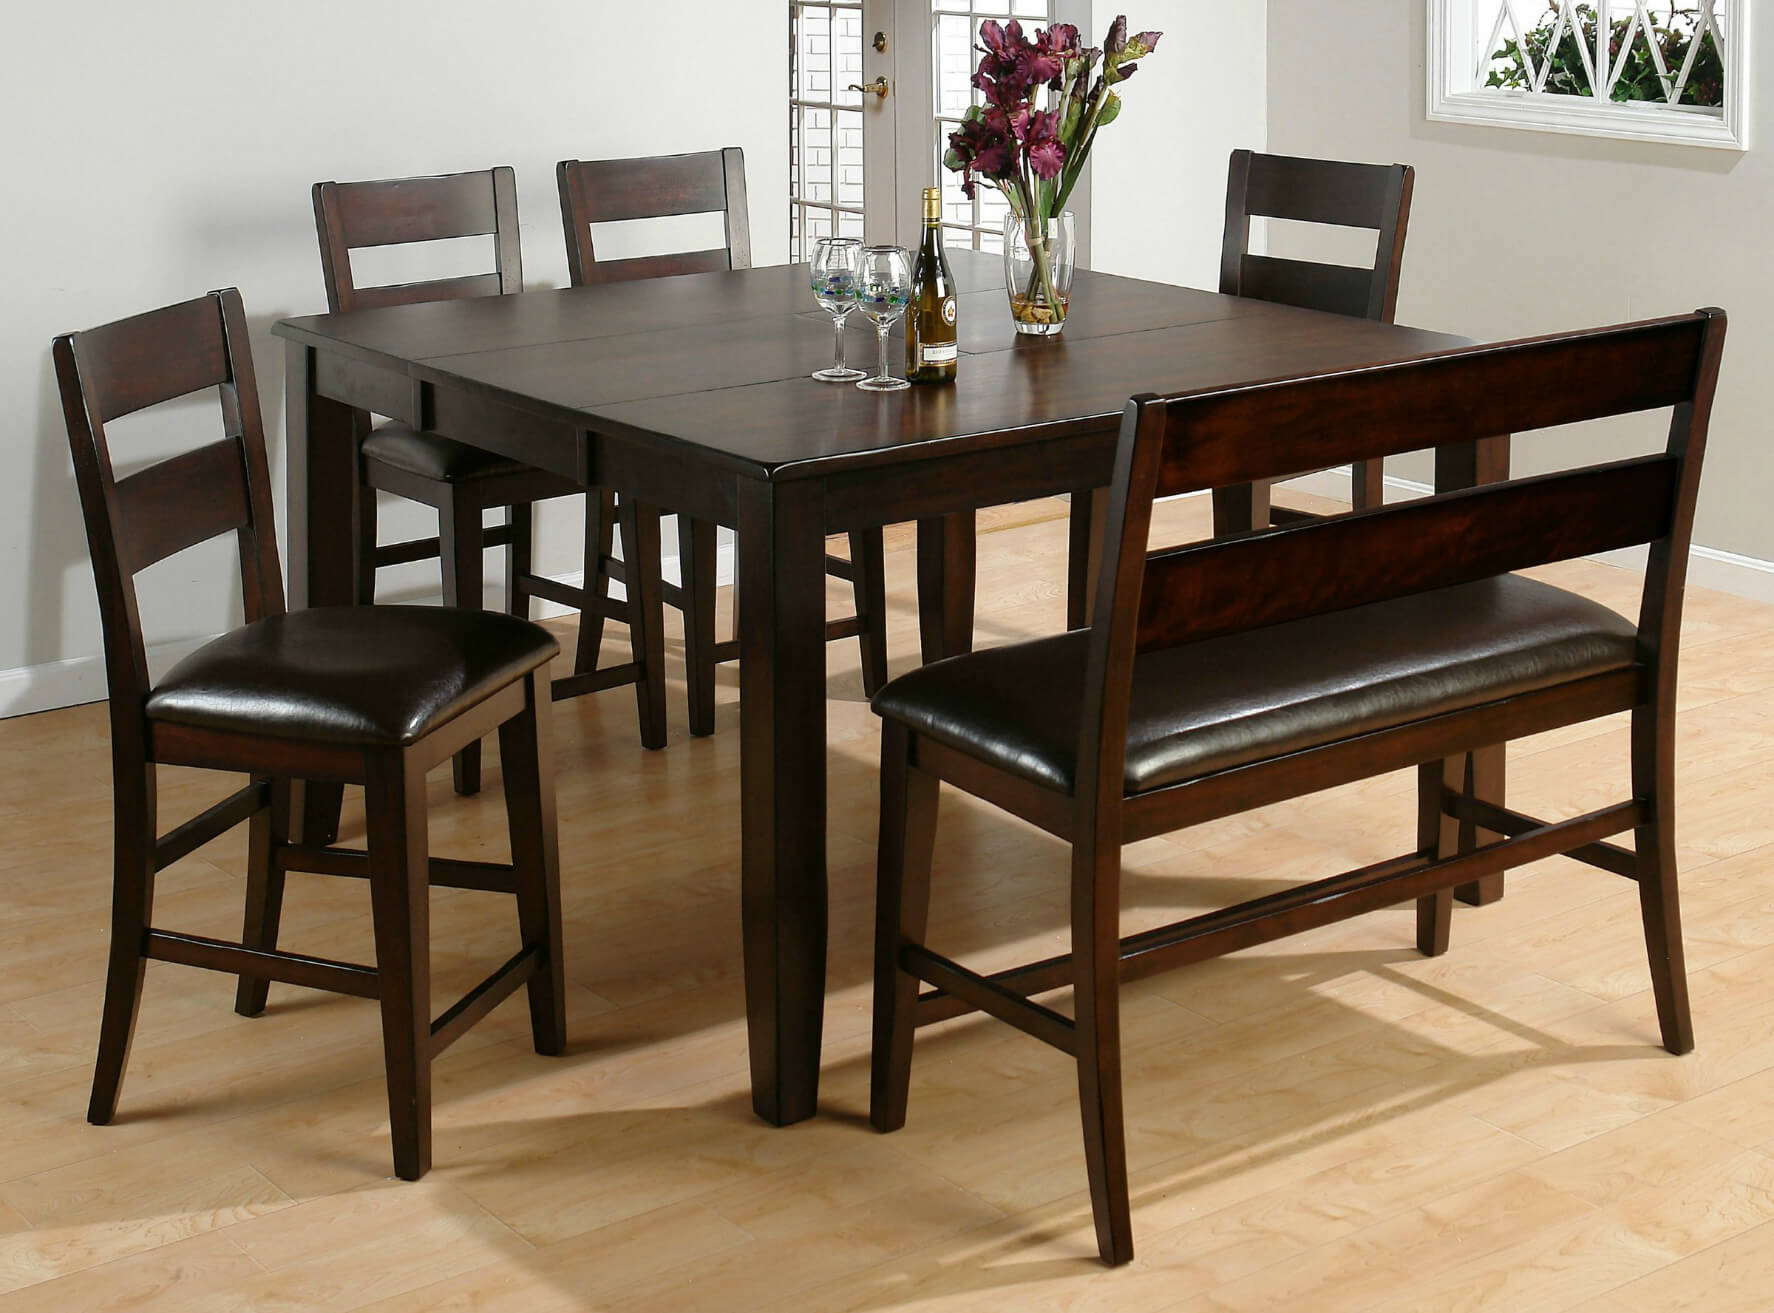 Here s a counter height square dining room table with bench  Moreover  the  bench includes. 26 Big   Small Dining Room Sets with Bench Seating